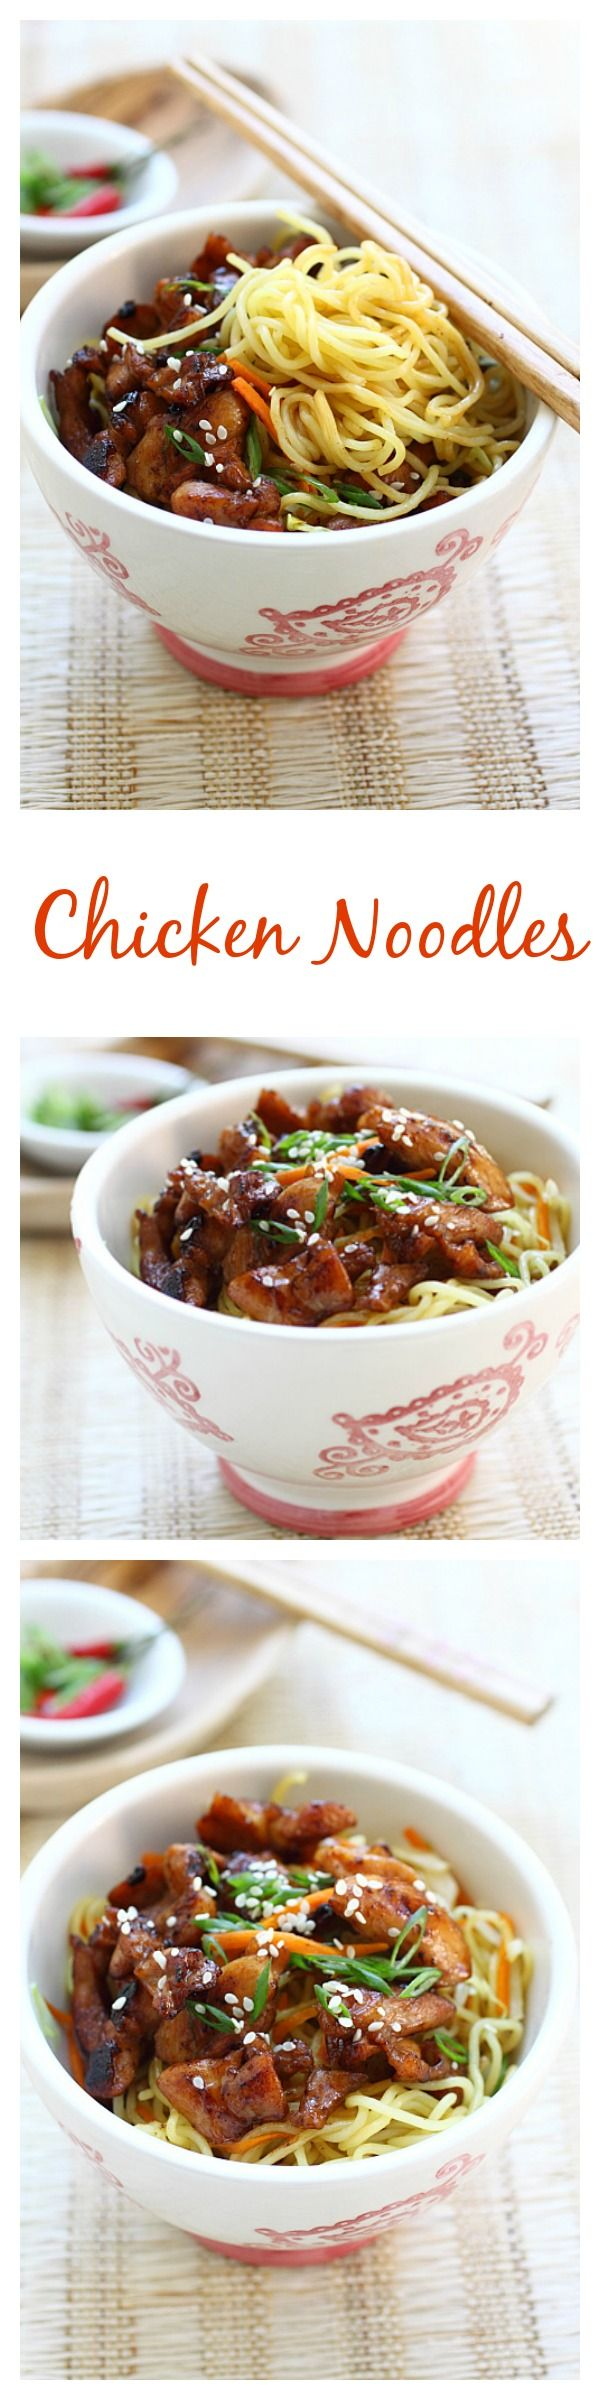 Stir-fried chicken noodles with chicken and egg noodles. This easy chicken noodles recipe is delicious, easy to make, and perfect for weeknight dinner.